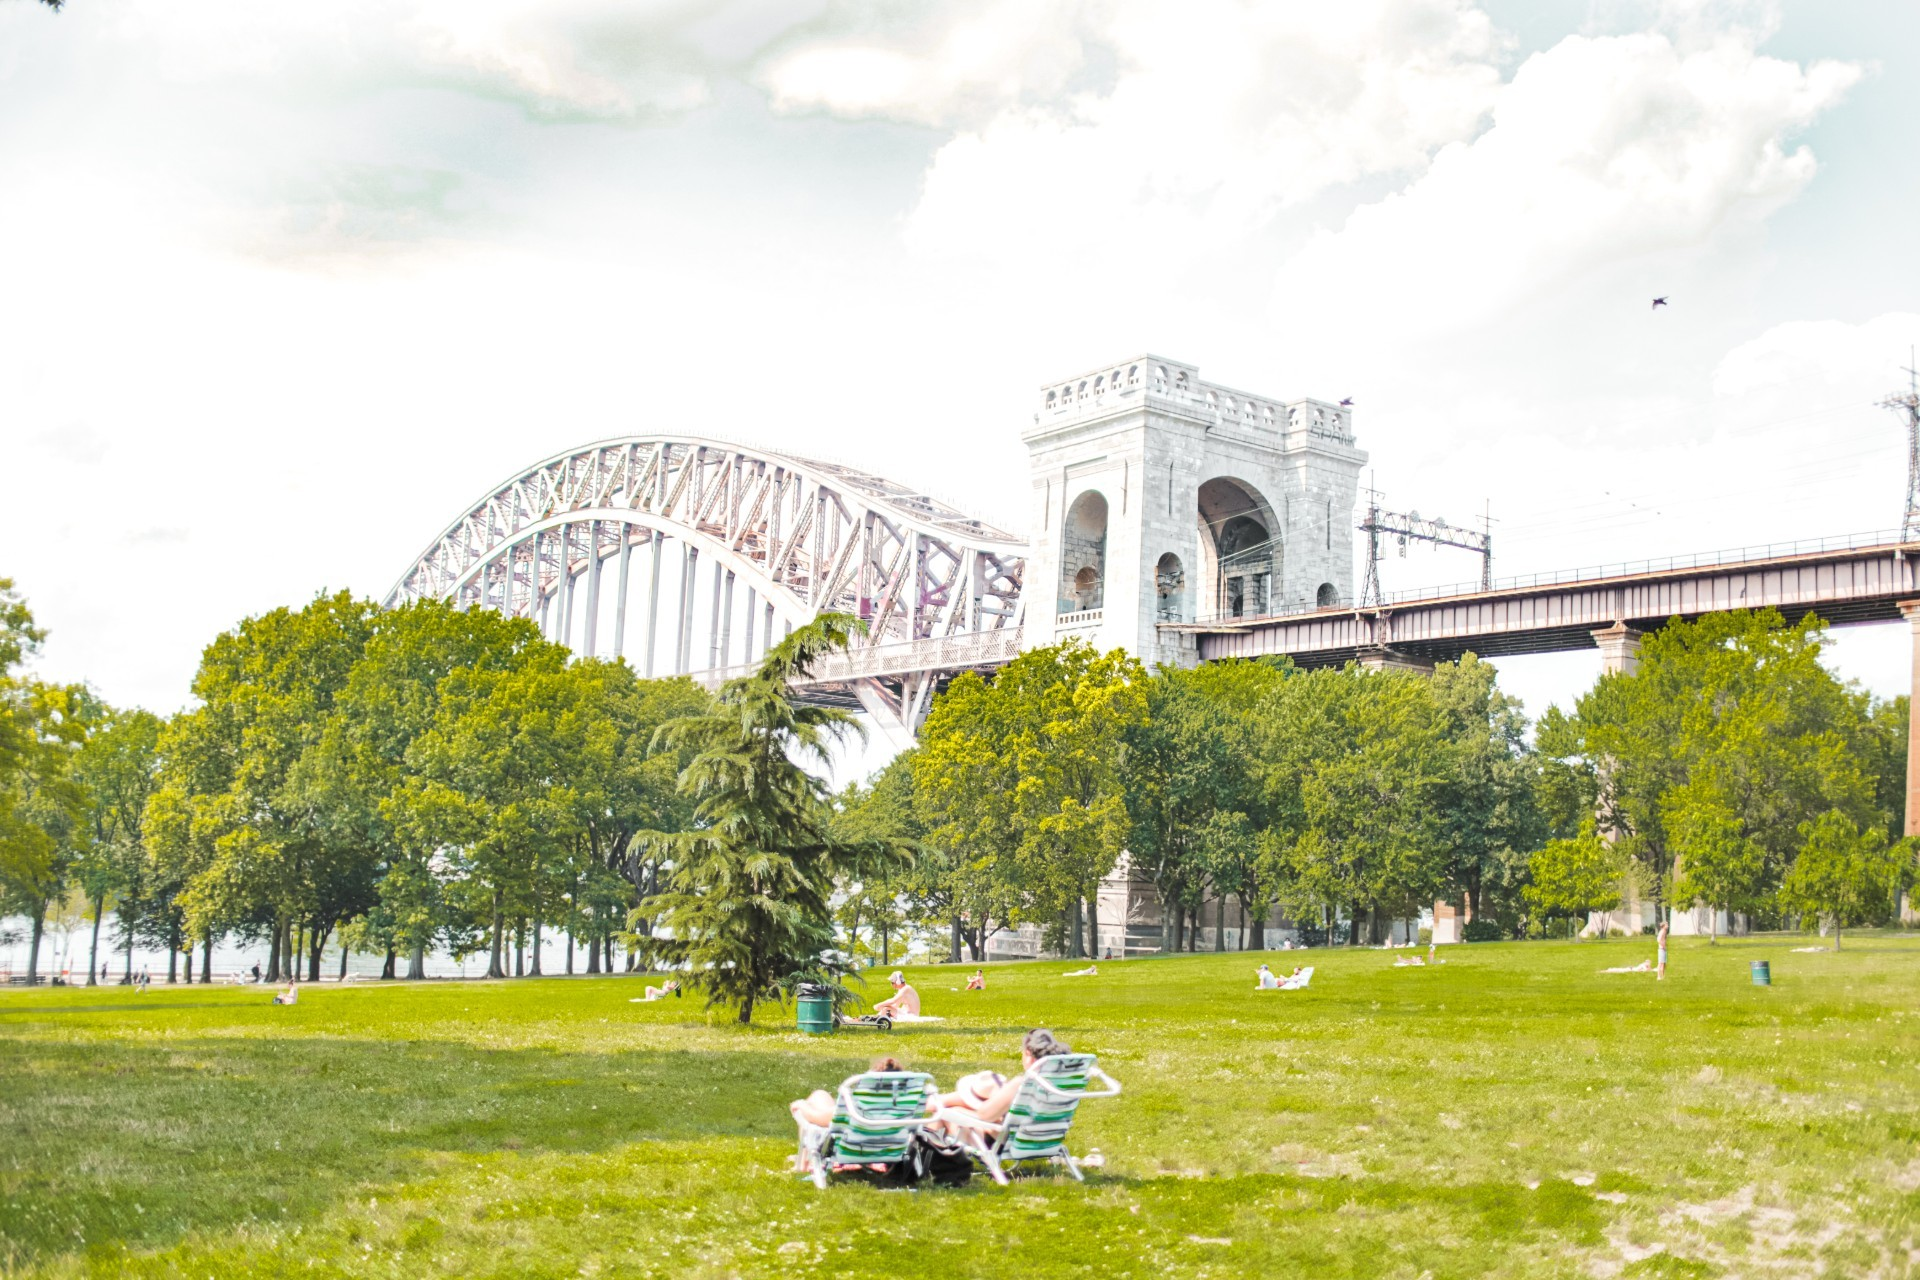 Astoria Park Hell Gate Bridge